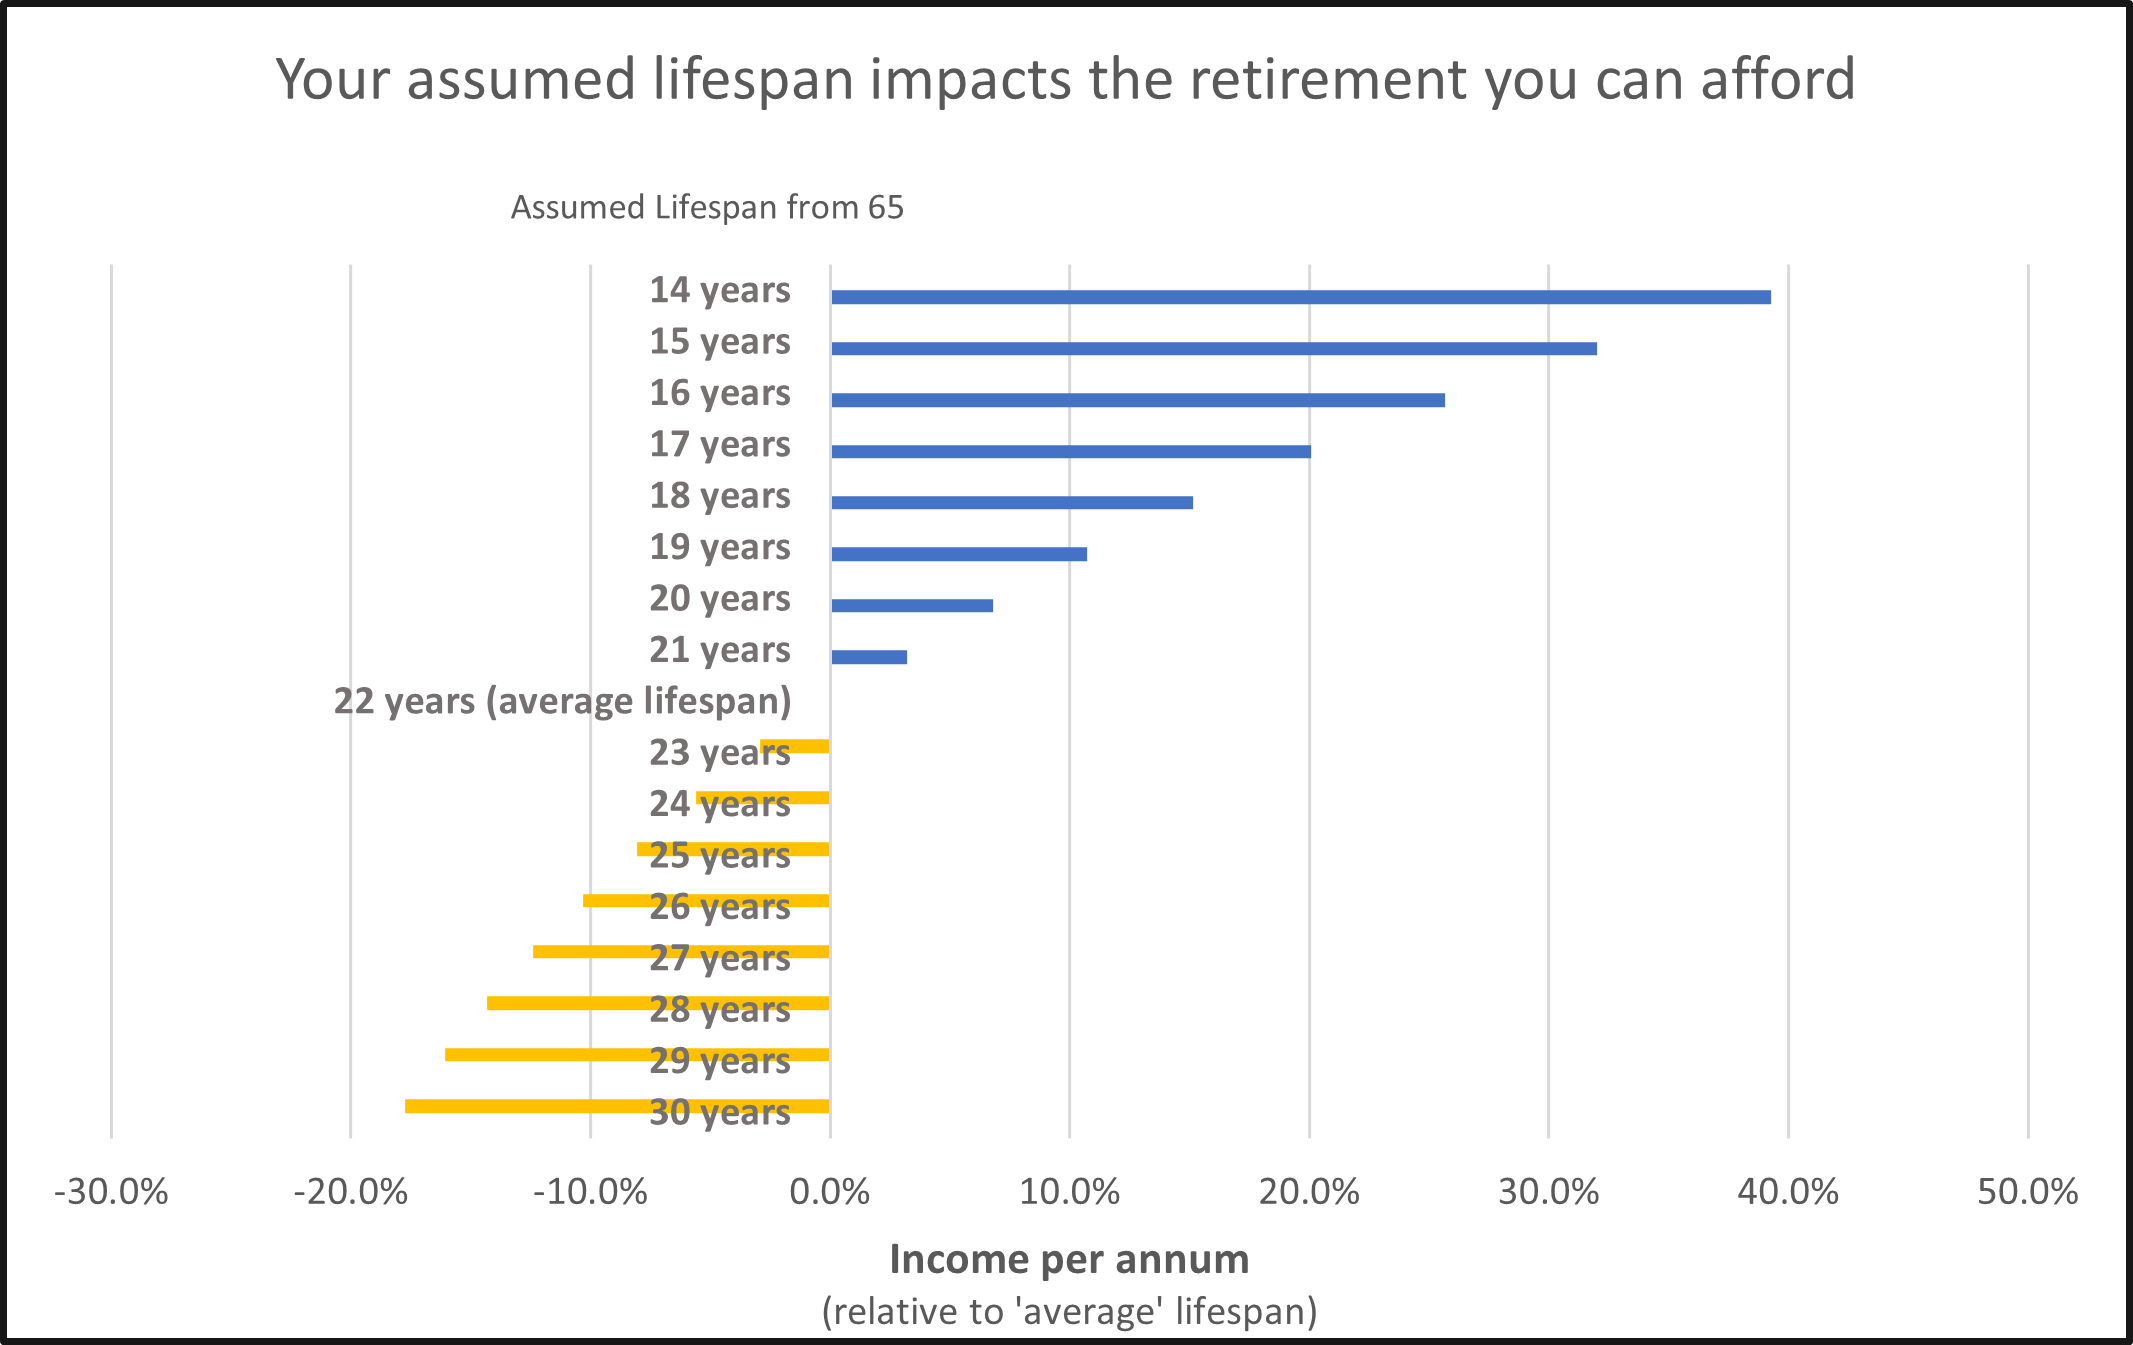 Bar graph showing 'Your assumed lifespan impacts the retirement you can afford'